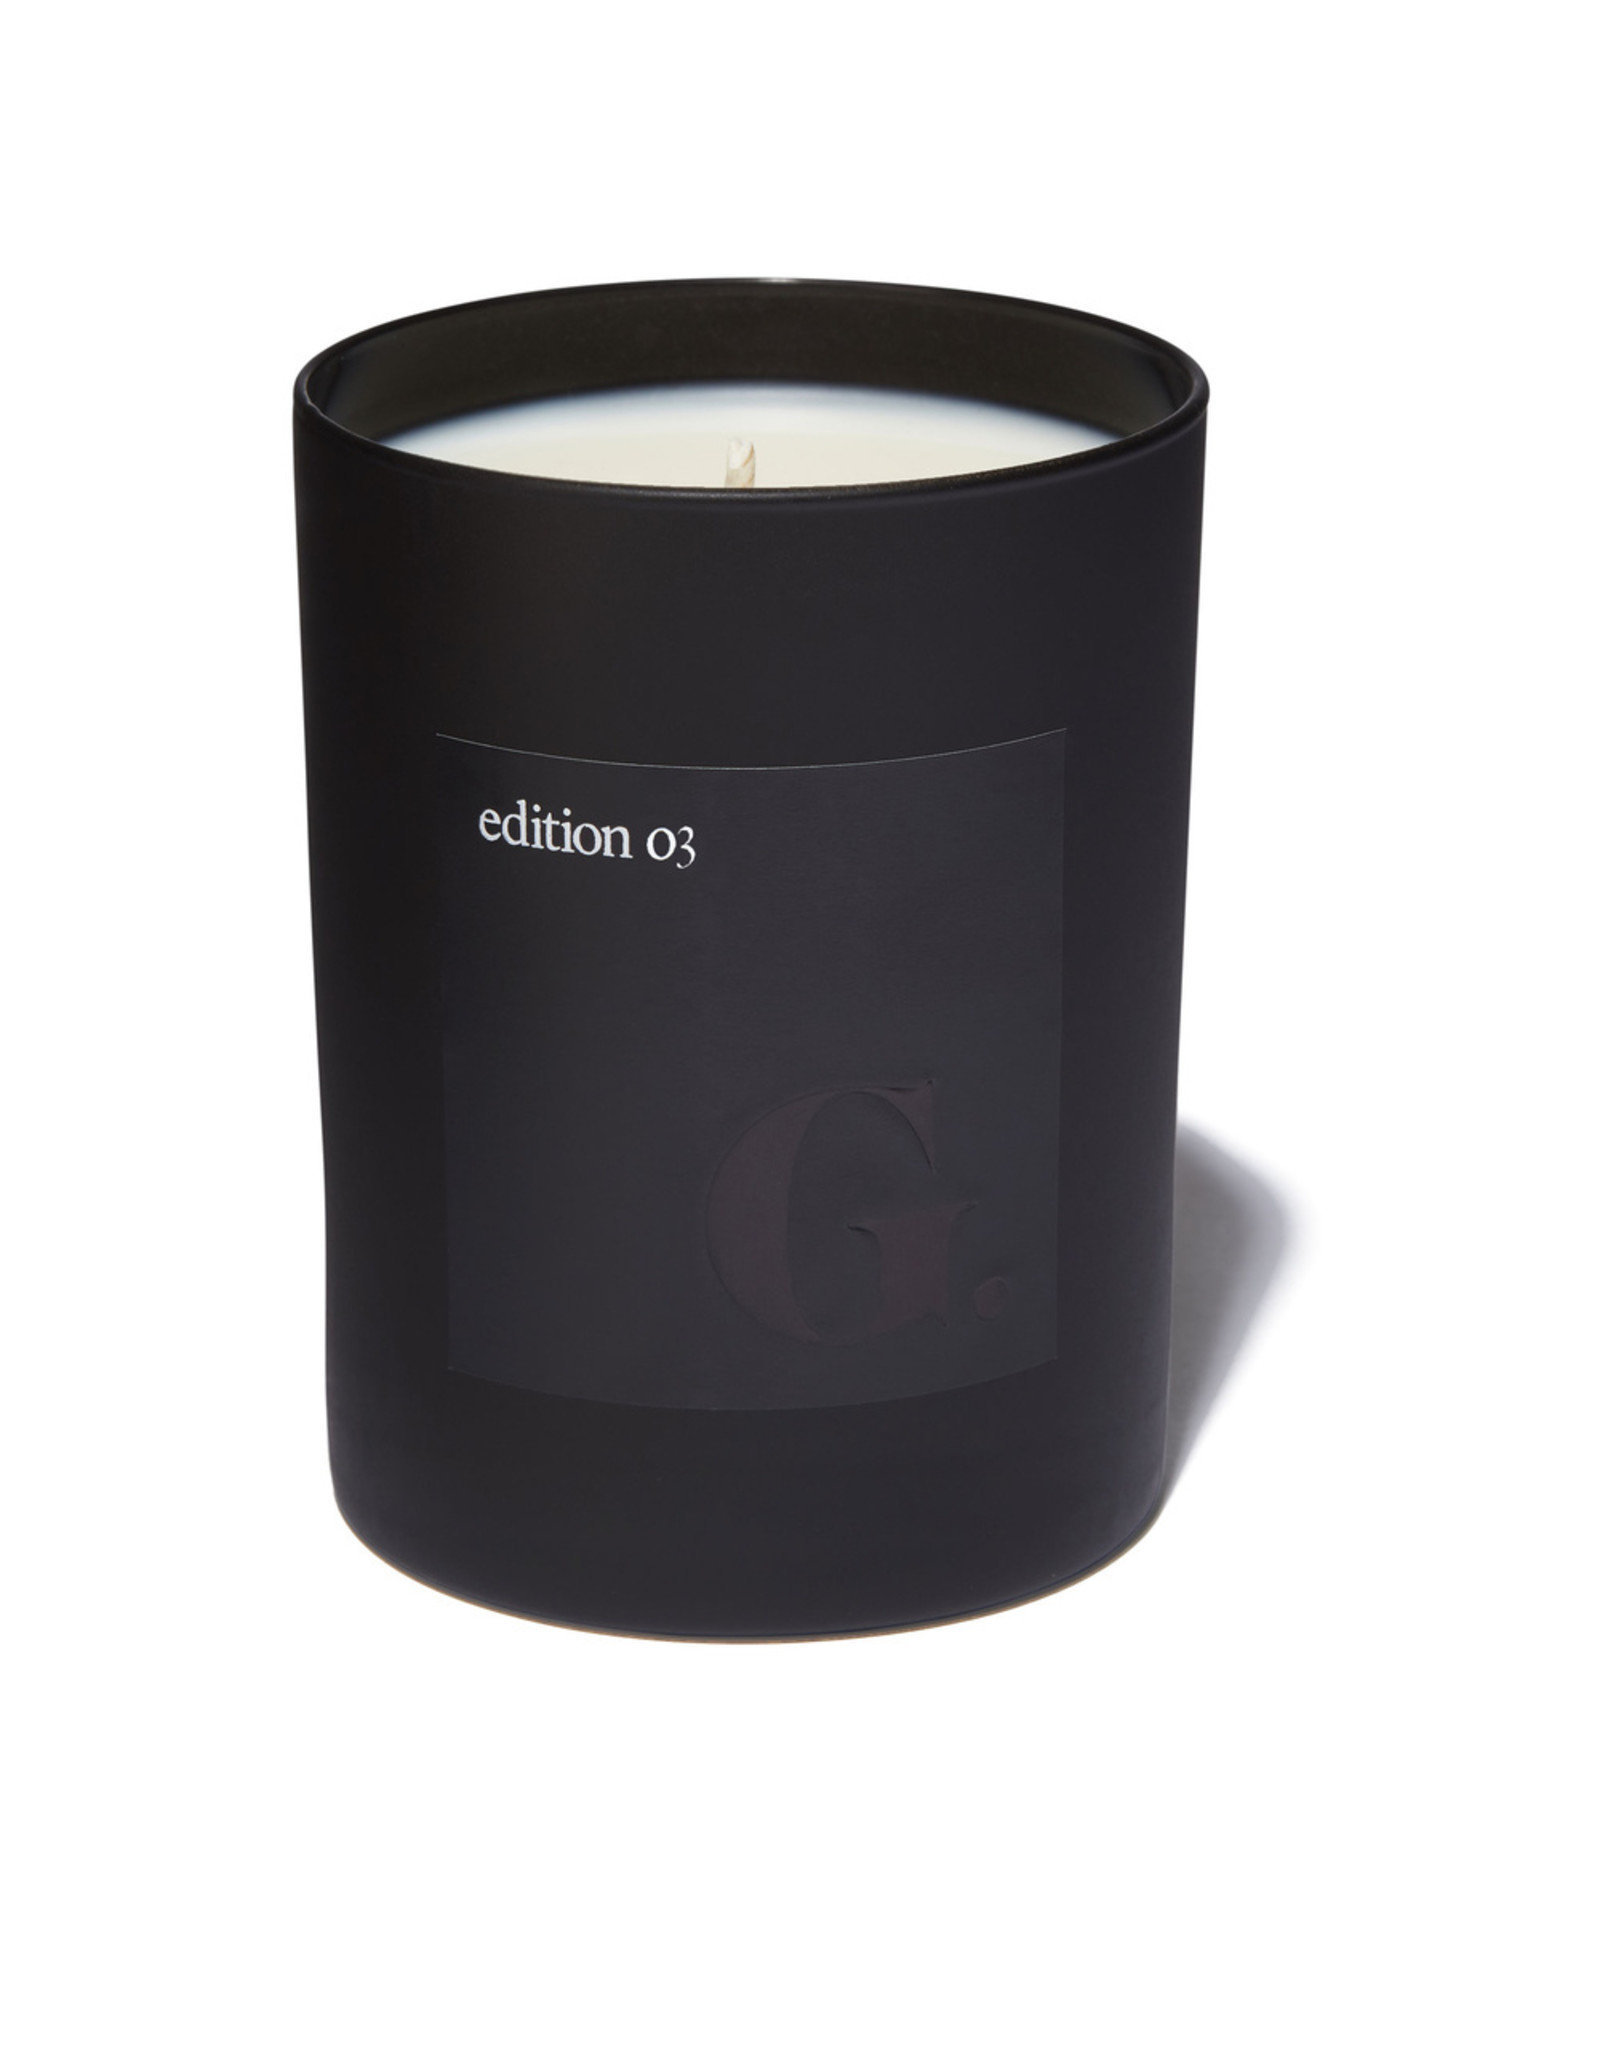 goop Fragrance Scented Candle: Edition 03 - Incense